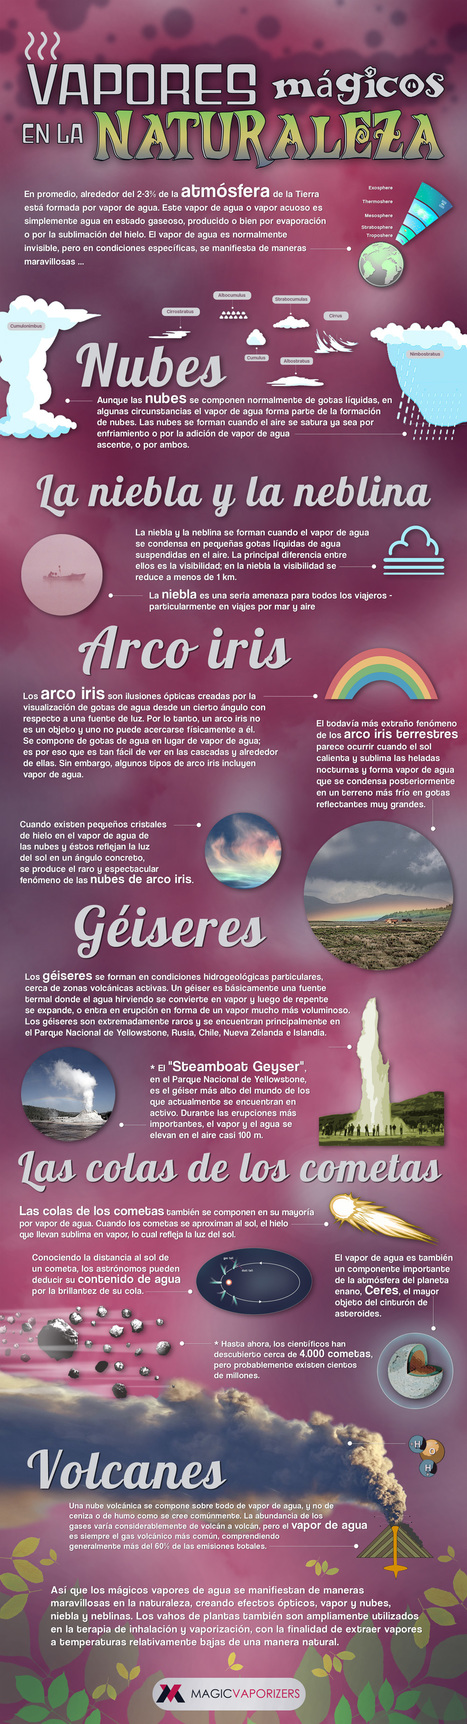 Vaporización, lo más natural | French Infographics & Quotographics | Scoop.it